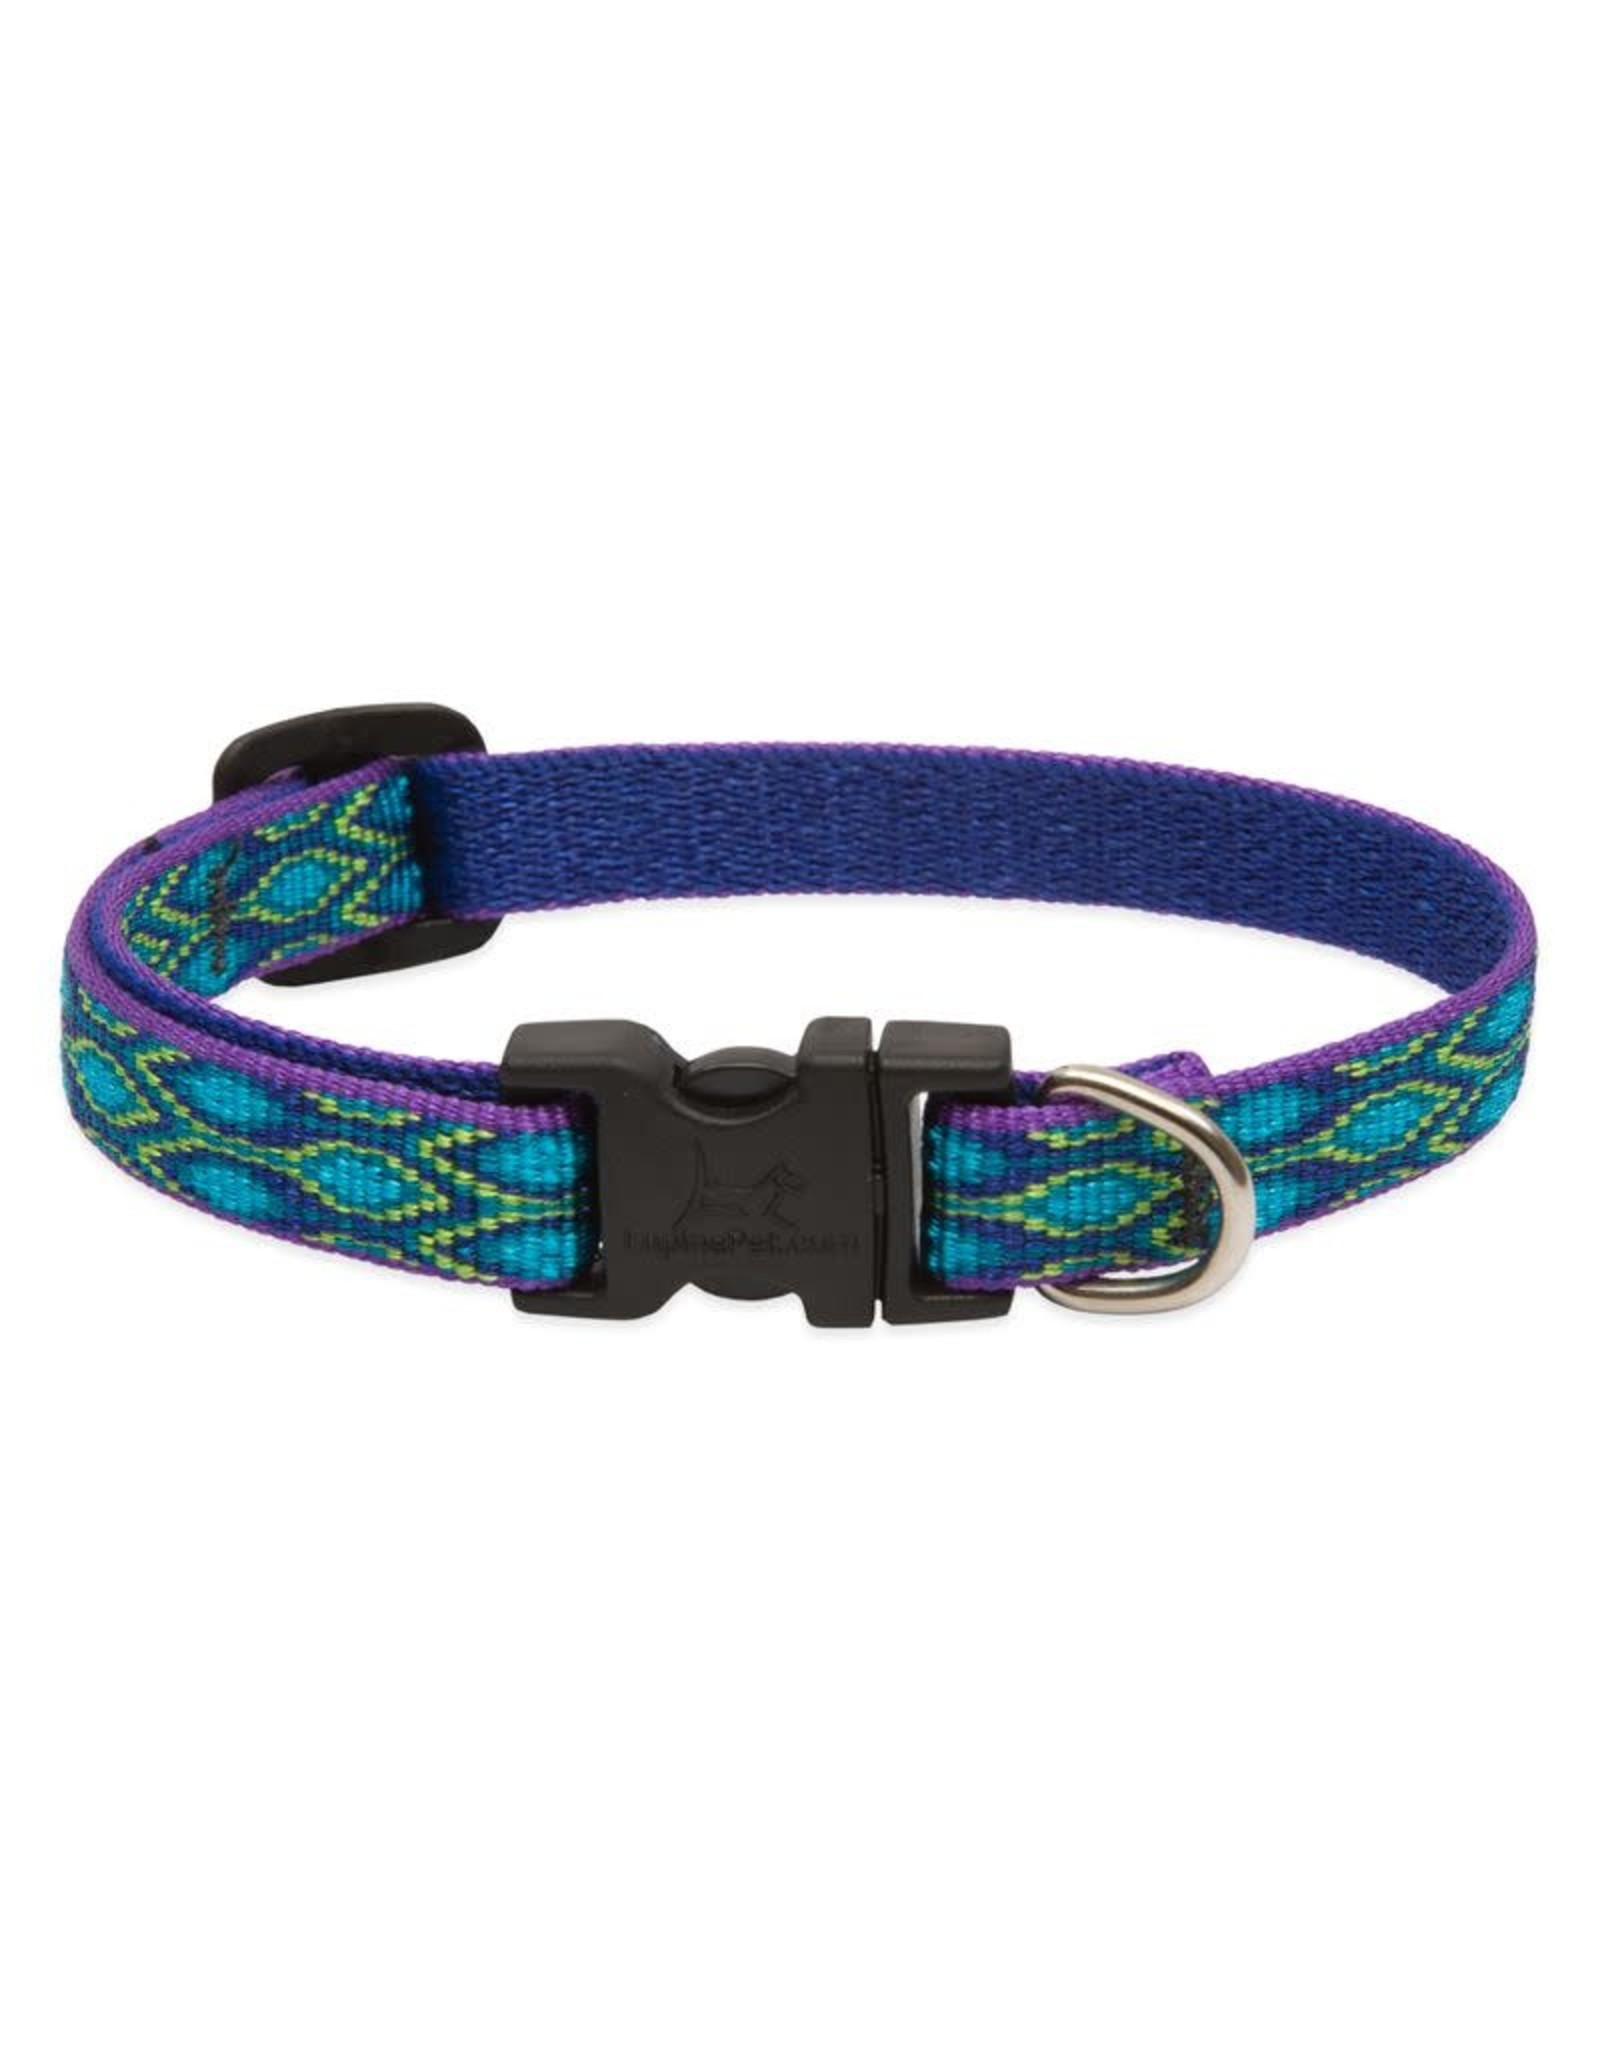 Lupine Lupine Rain Song Collar: 3/4 in wide, 13-22 inch